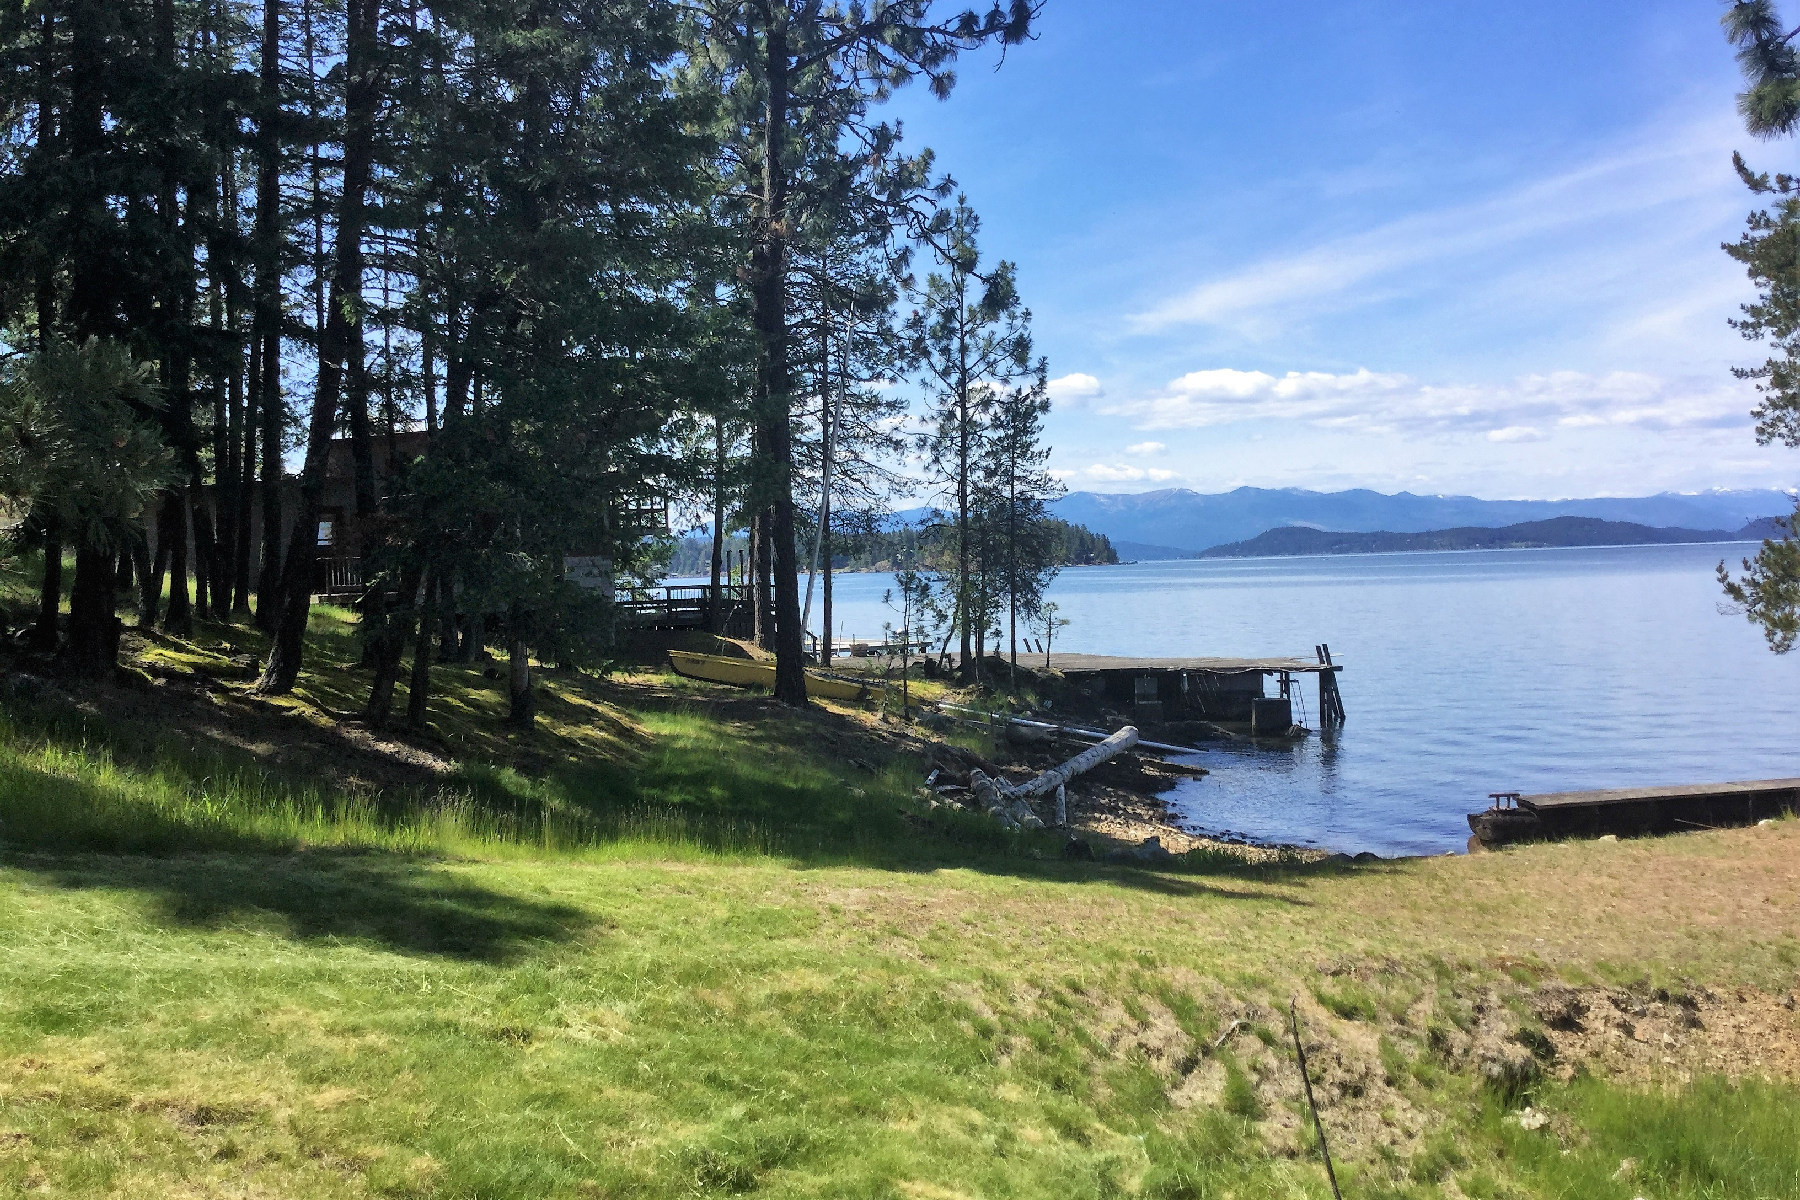 Land for Sale at Beautiful Waterfront Property 1193 Red Fir Rd Hope, Idaho, 83836 United States